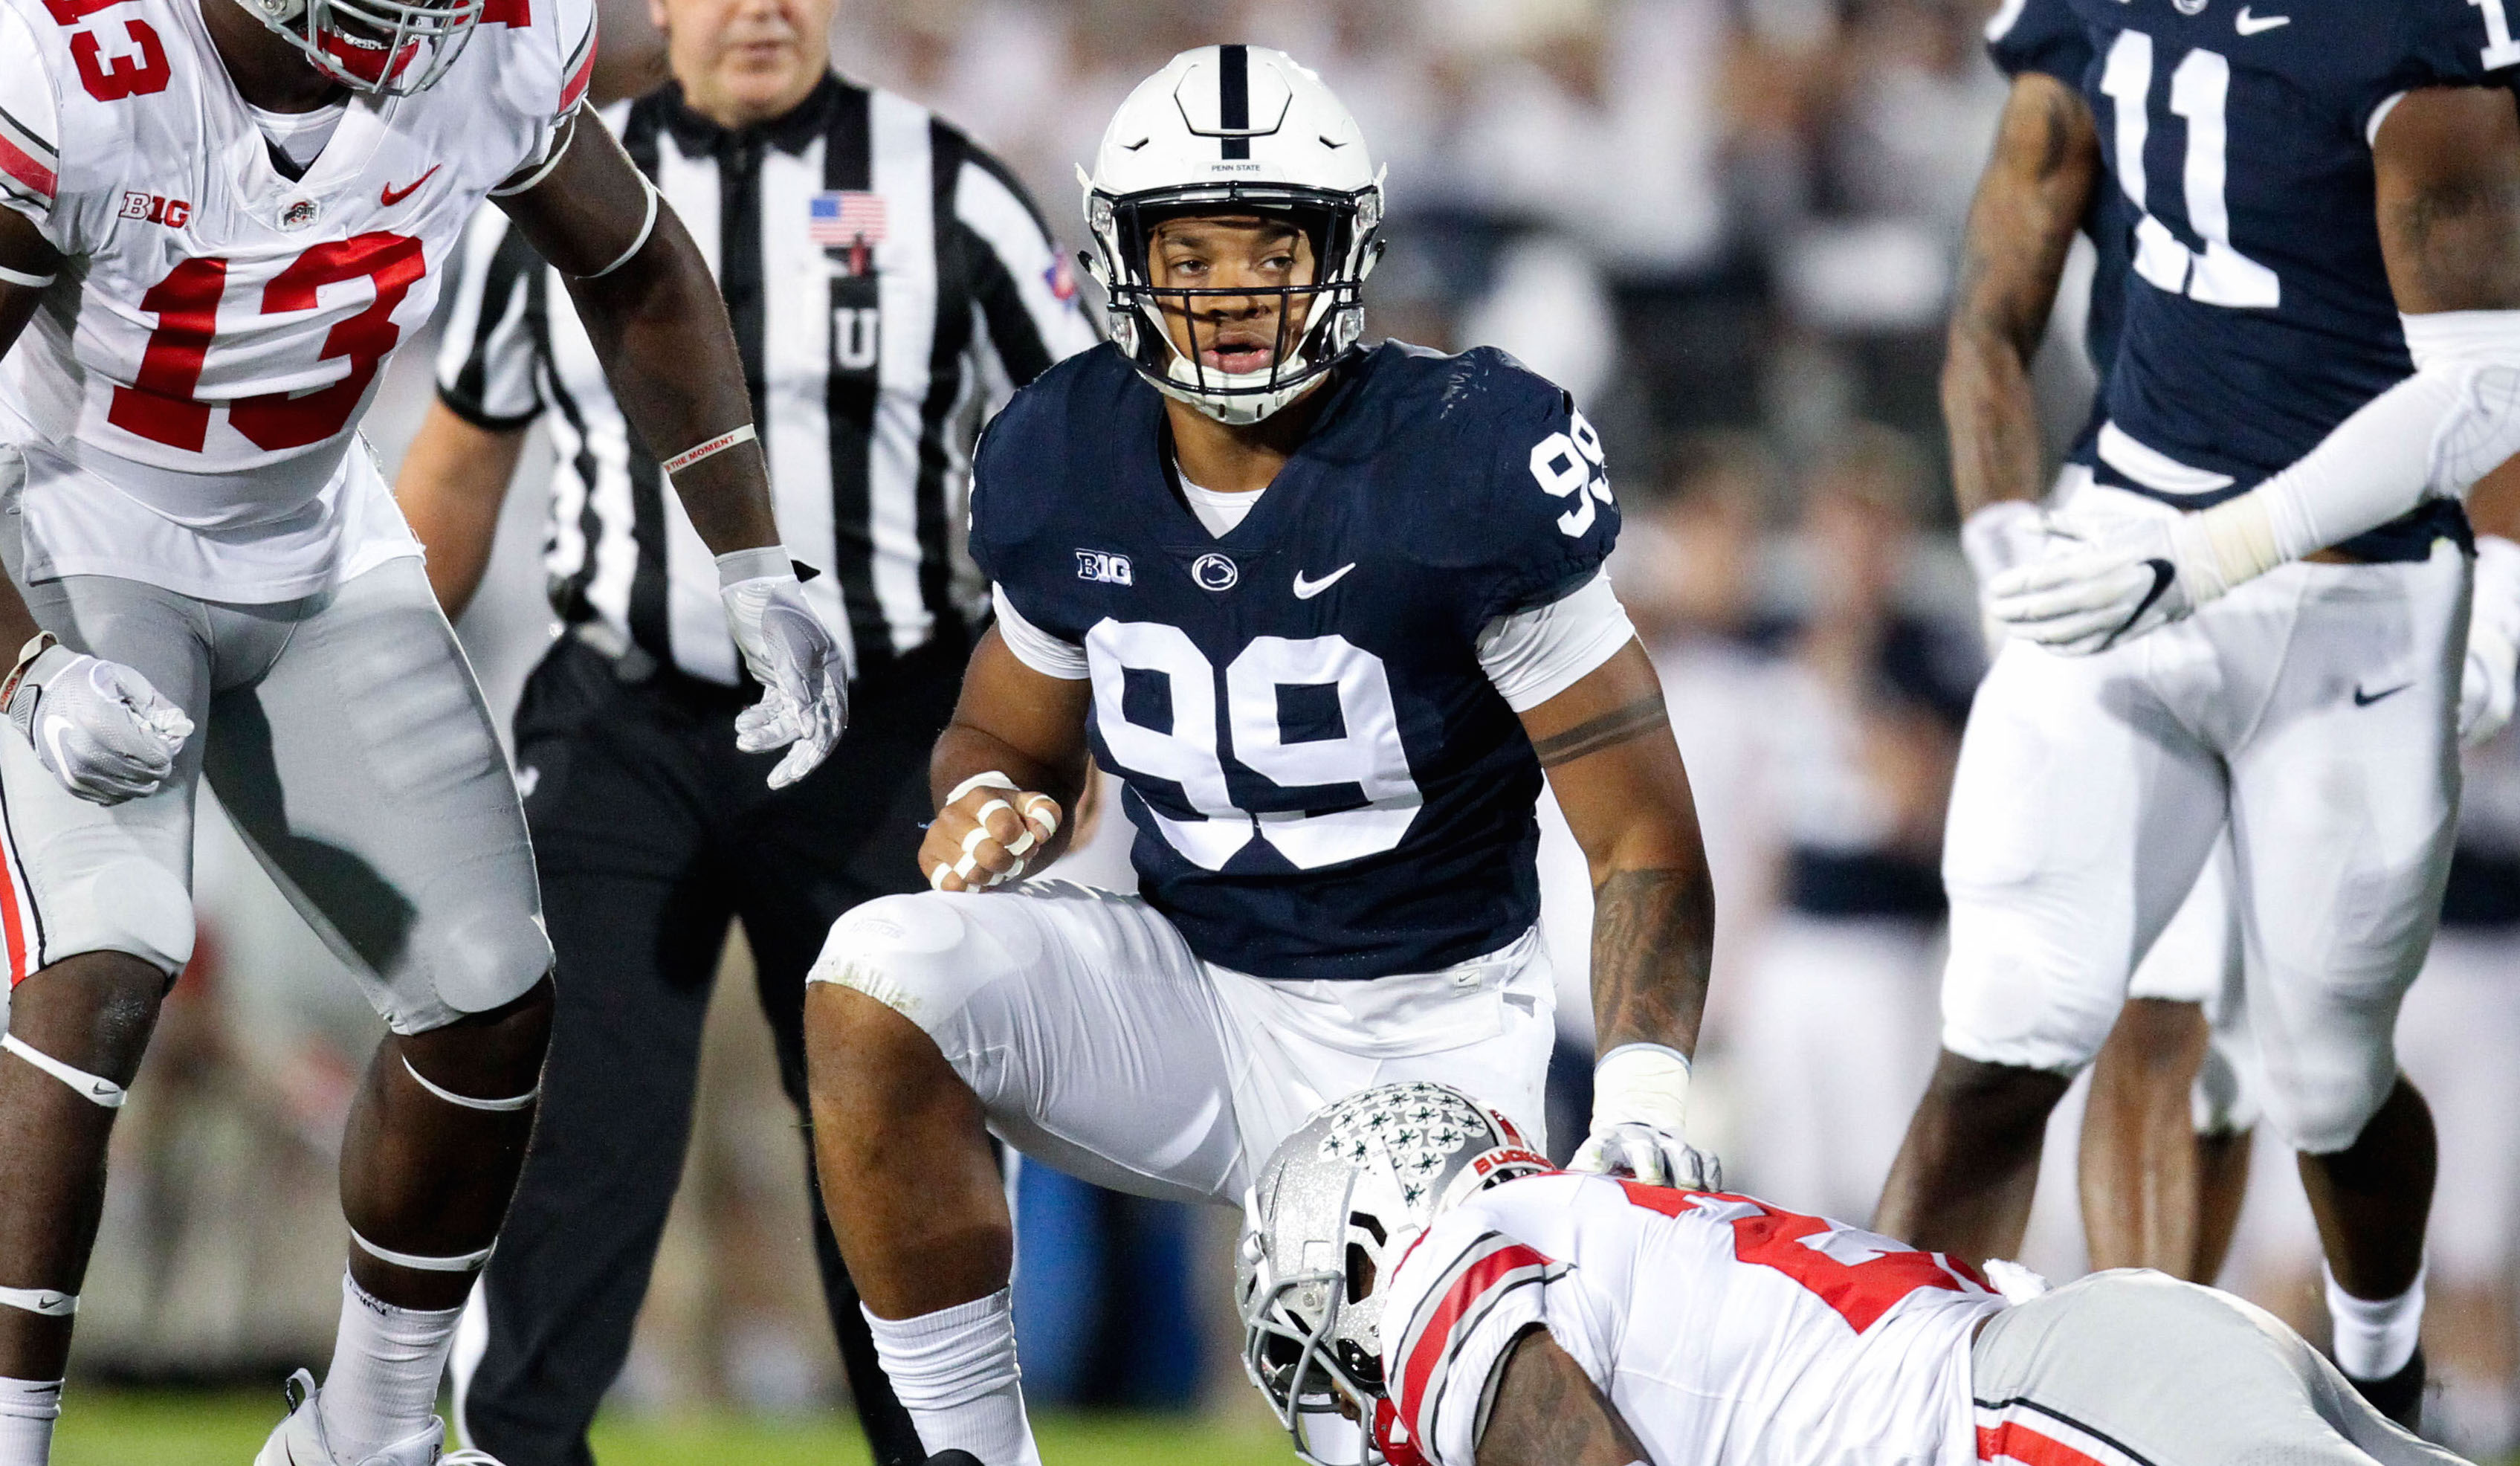 Sep 29, 2018; University Park, PA, USA; Penn State Nittany Lions defensive end Yetur Gross-Matos (99) following a tackle during the first quarter against the Ohio State Buckeyes at Beaver Stadium. Ohio State defeated Penn State 27-26. Mandatory Credit: Matthew O'Haren-USA TODAY Sports